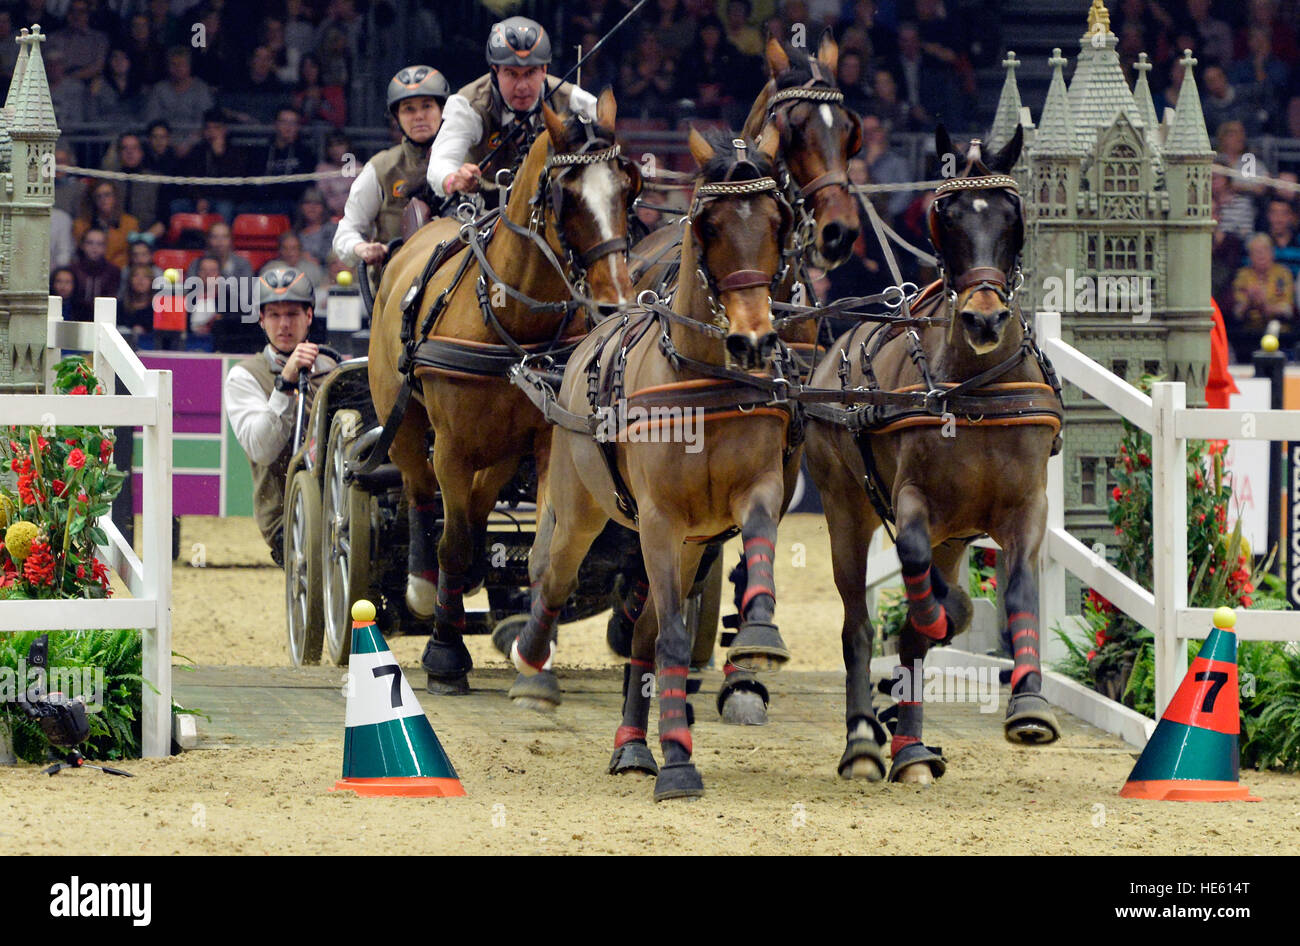 London, UK. 17th Dec, 2016. Olympia The London International Horse Show at Grand Hall Olympia London UK. The FEI Stock Photo